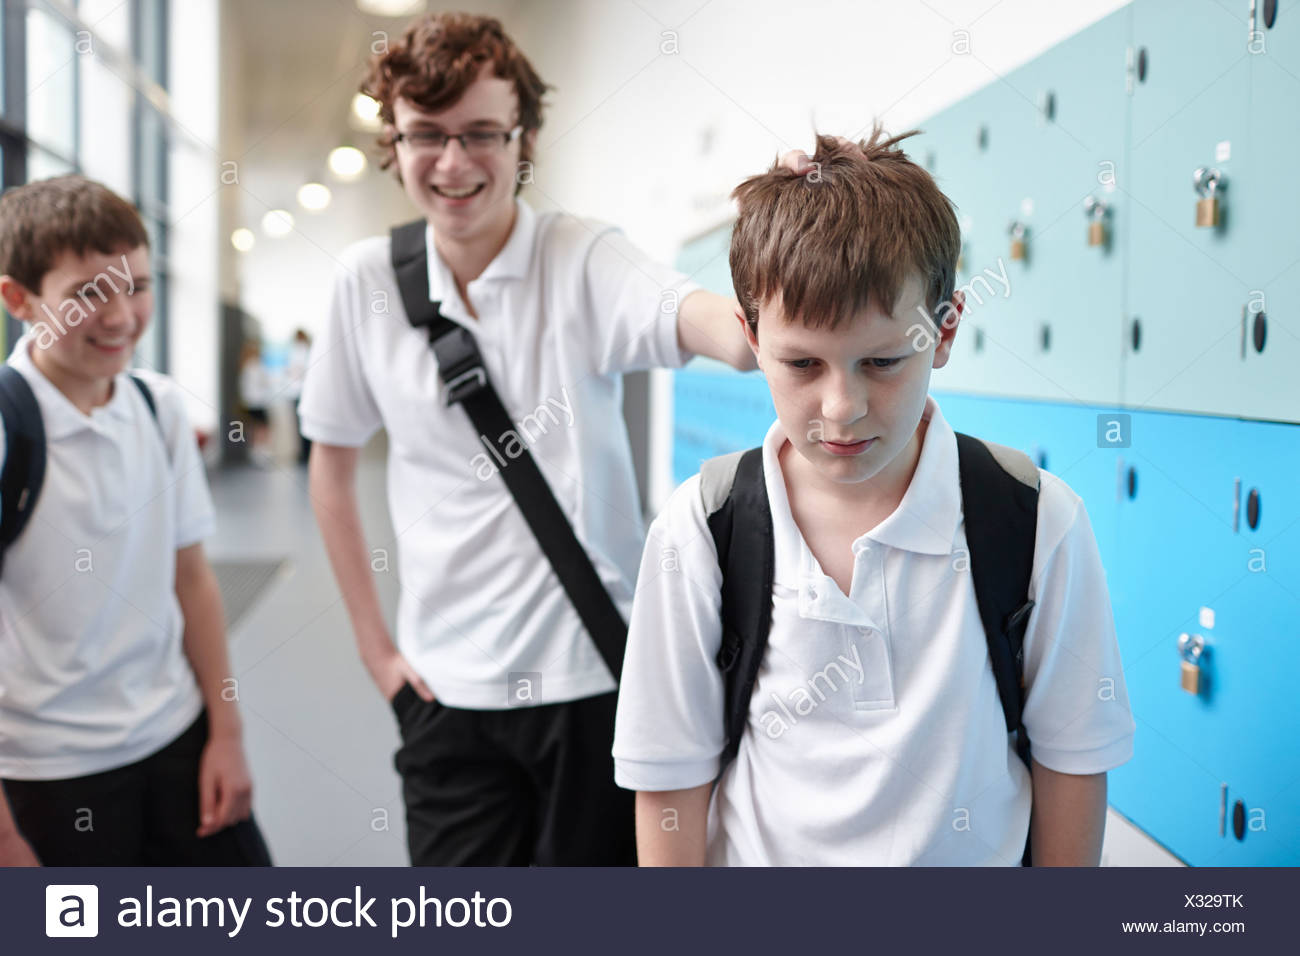 Schoolboy being bullied in school corridor - Stock Image